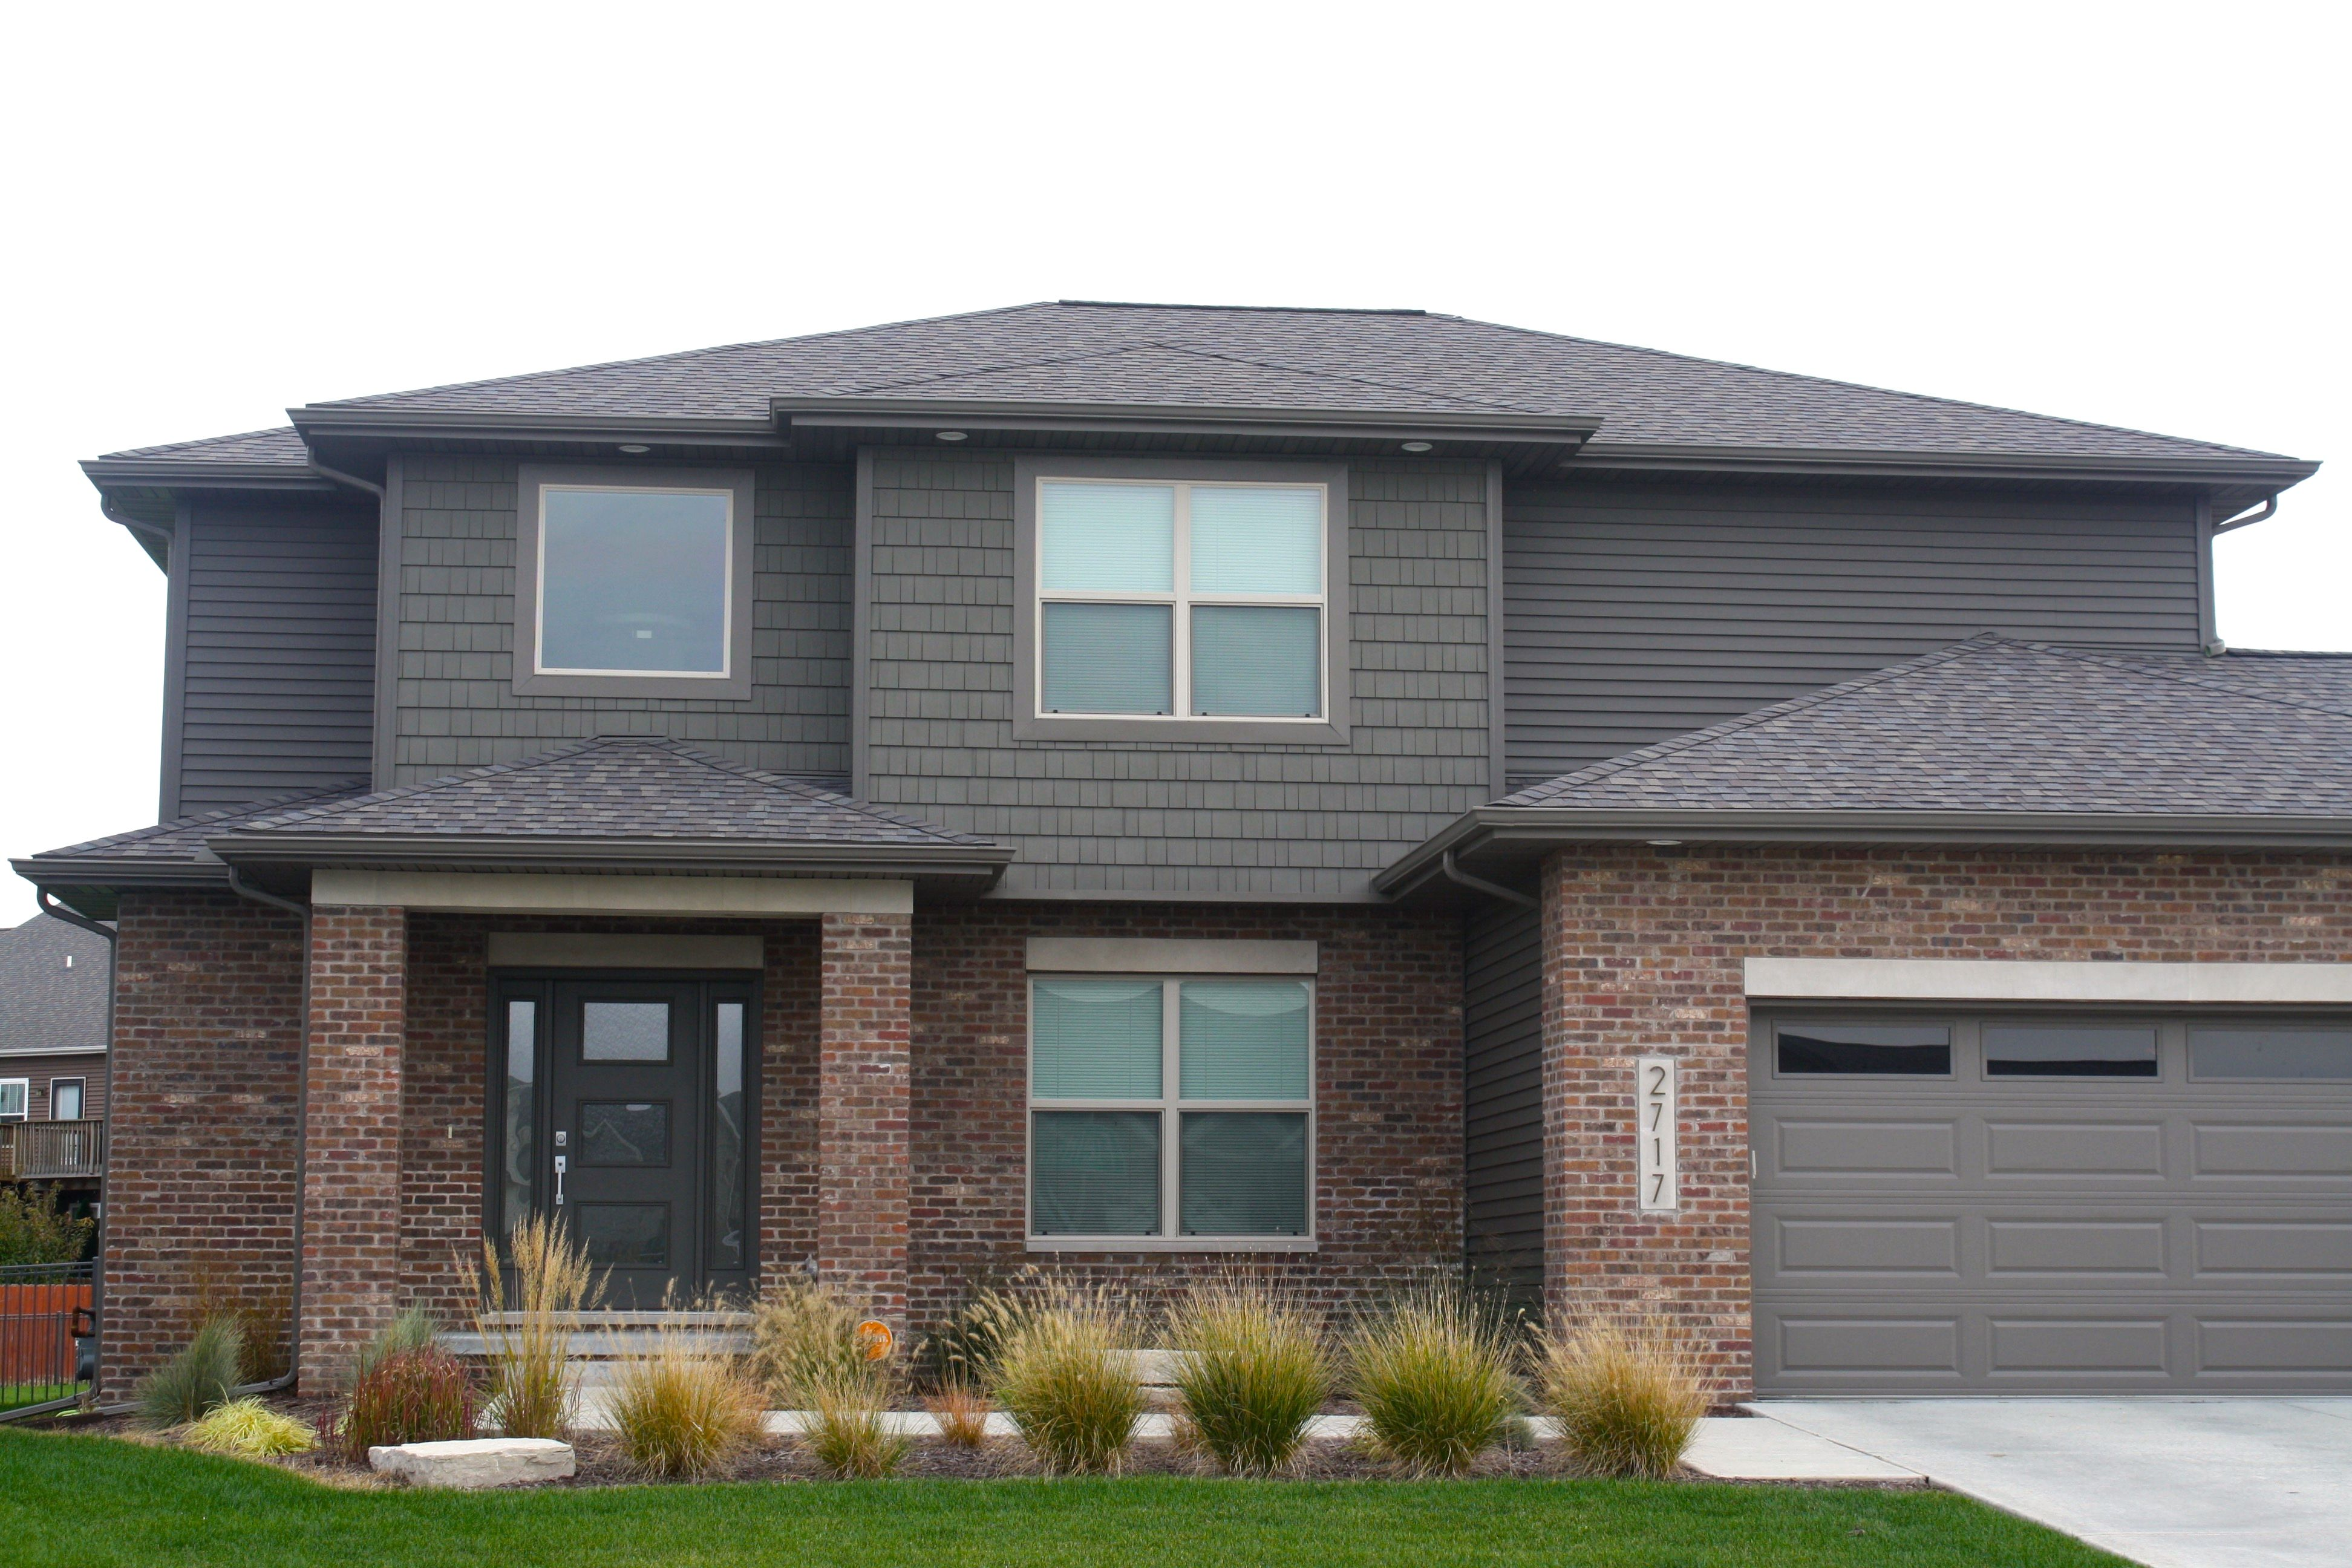 image result for brown brick with dark siding house exterior